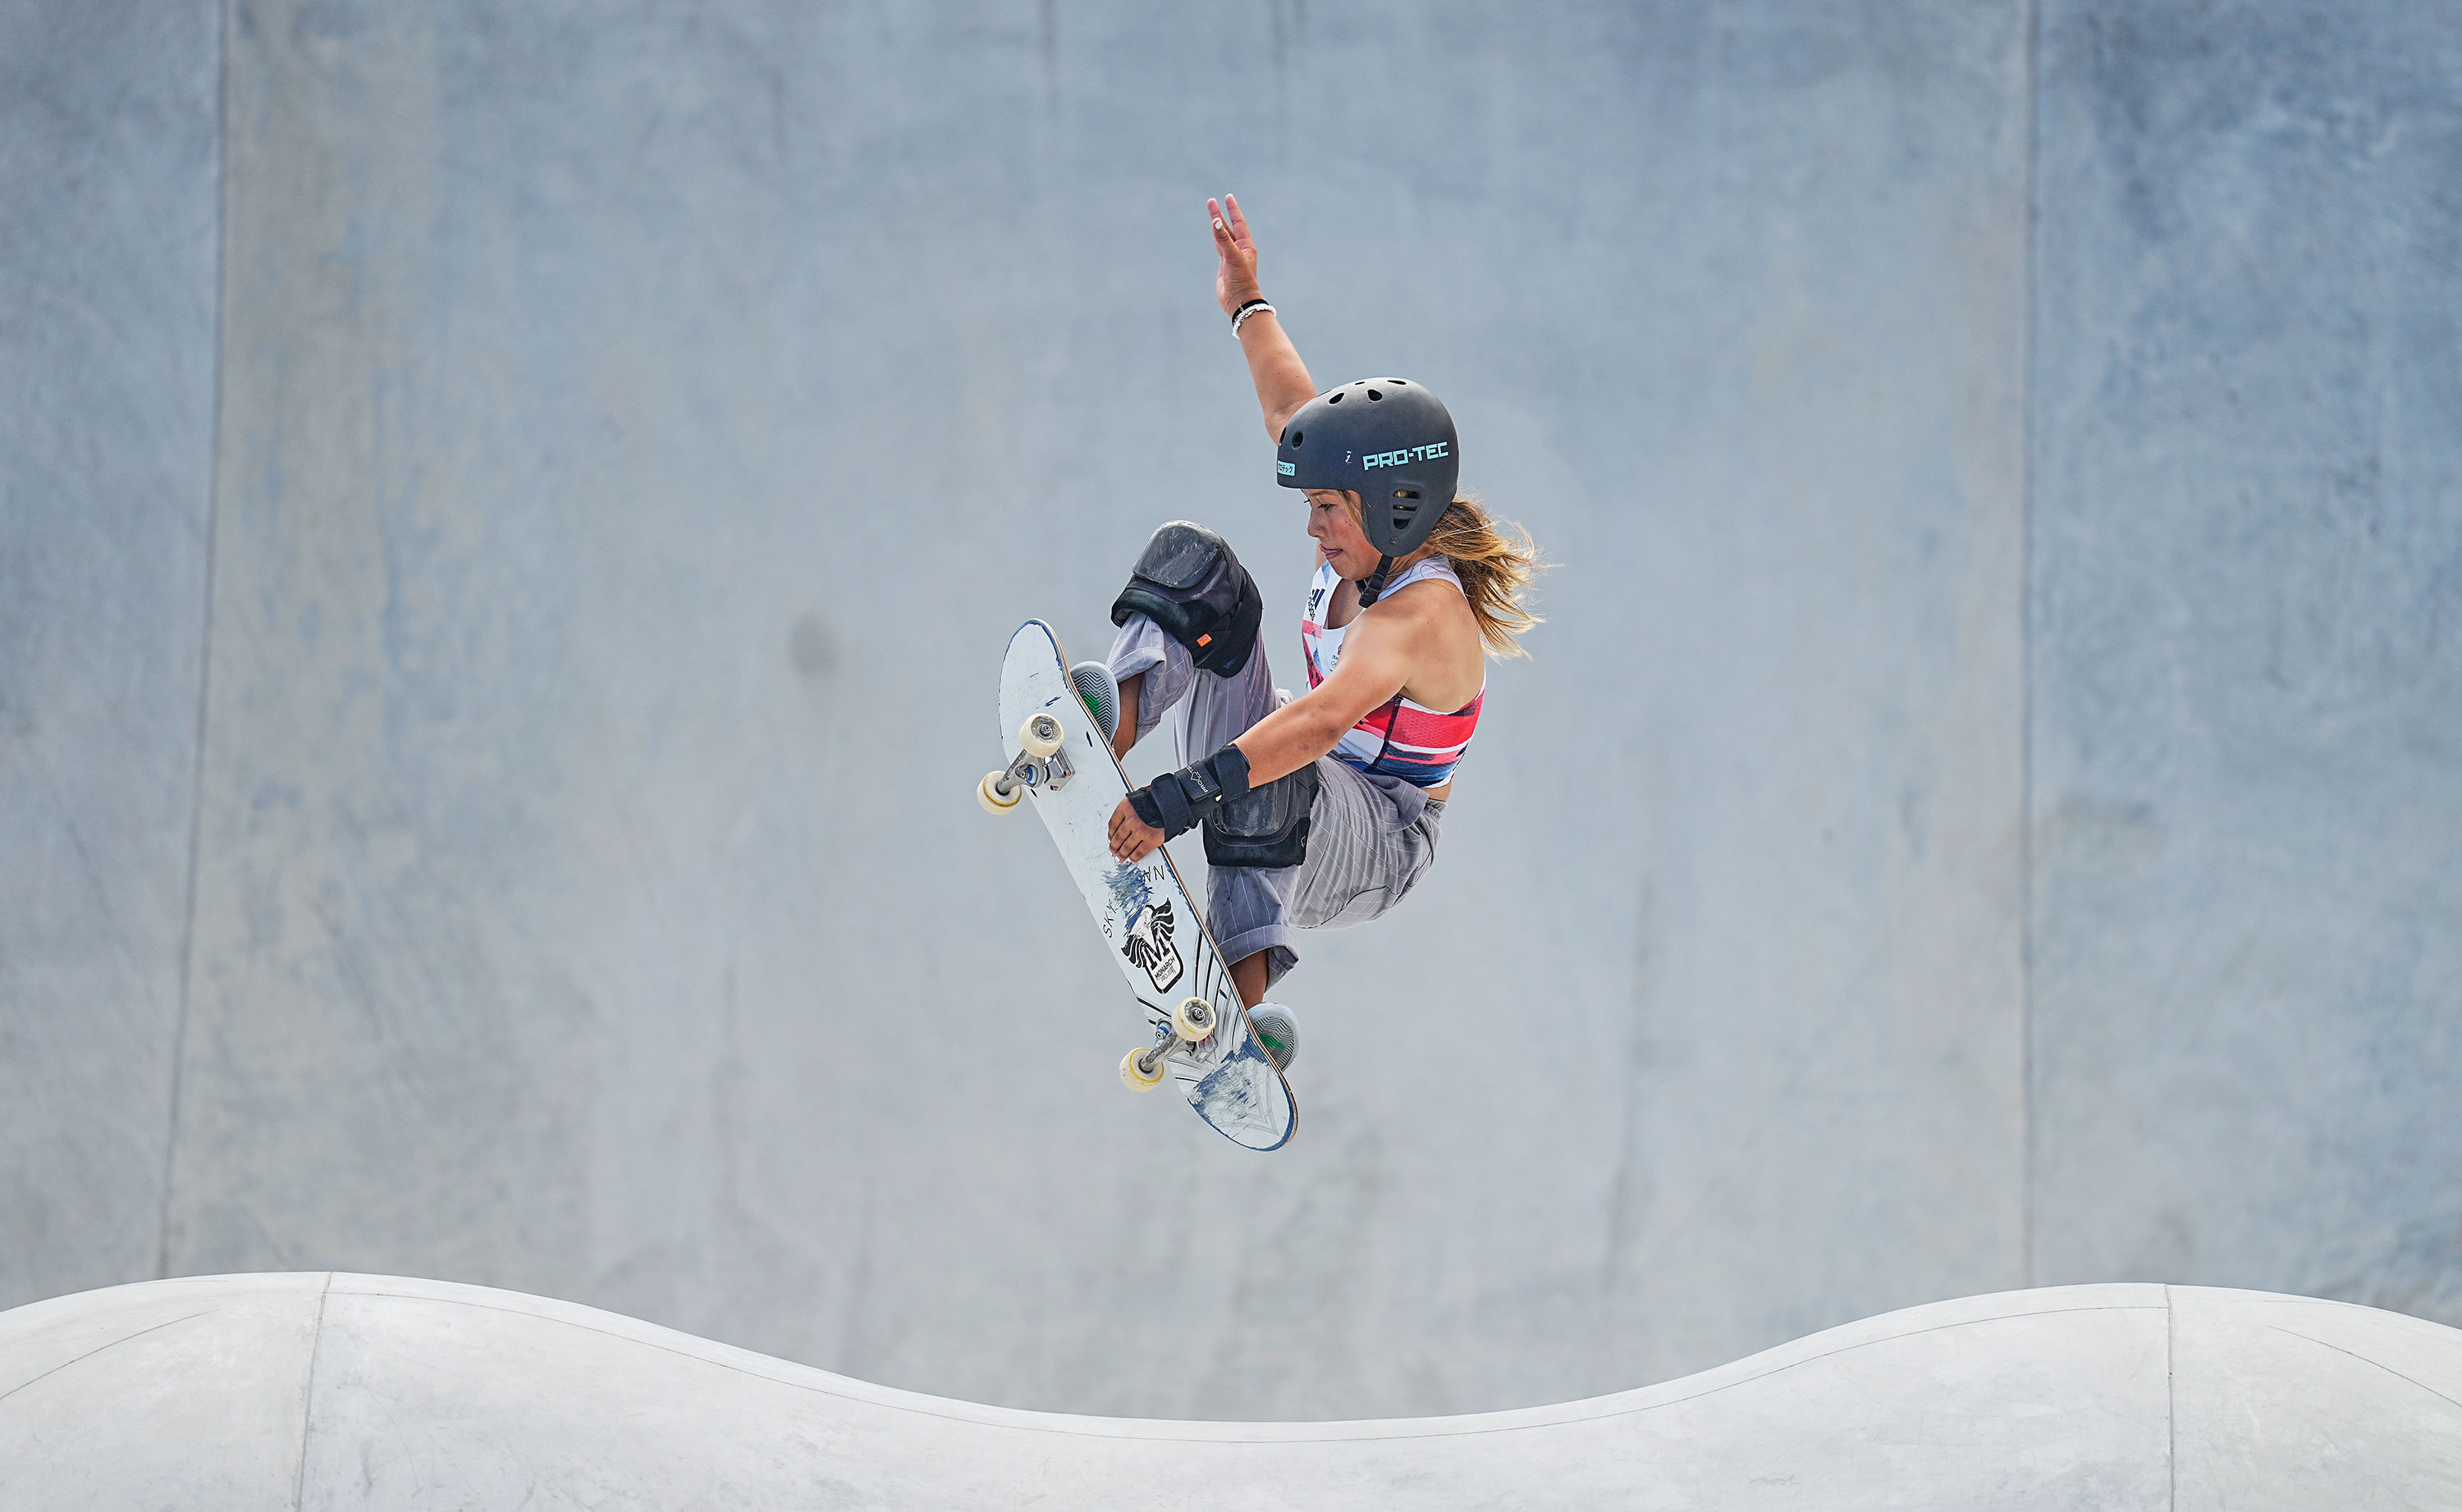 Sky Brown of Great Britain competes during park skateboarding event on August 4.